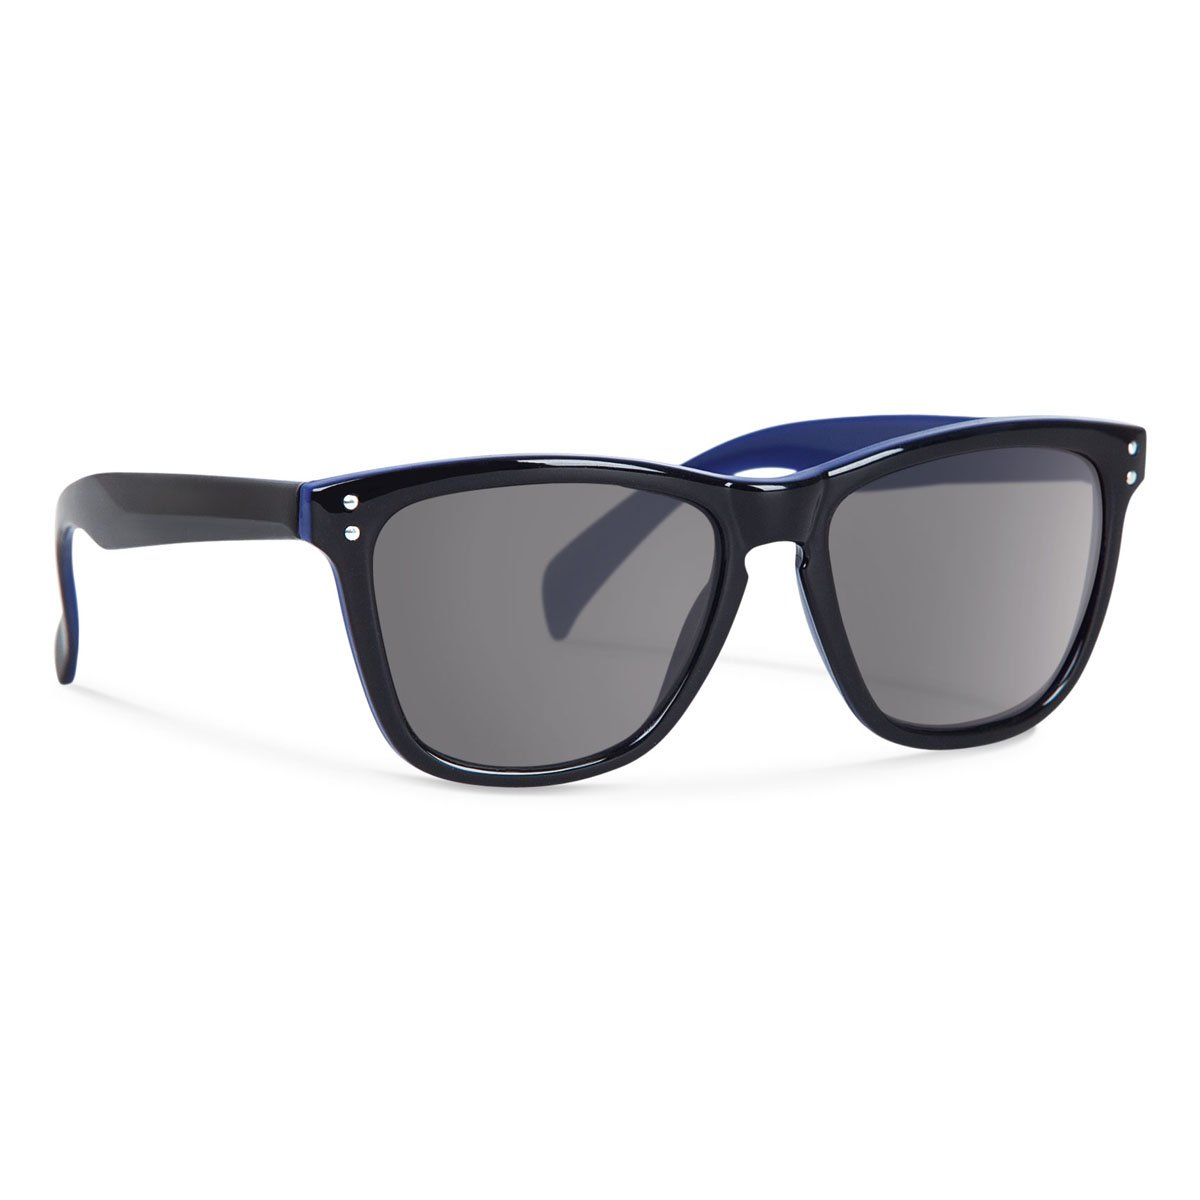 Forecast Optics Wander Sunglasses Smith Optics